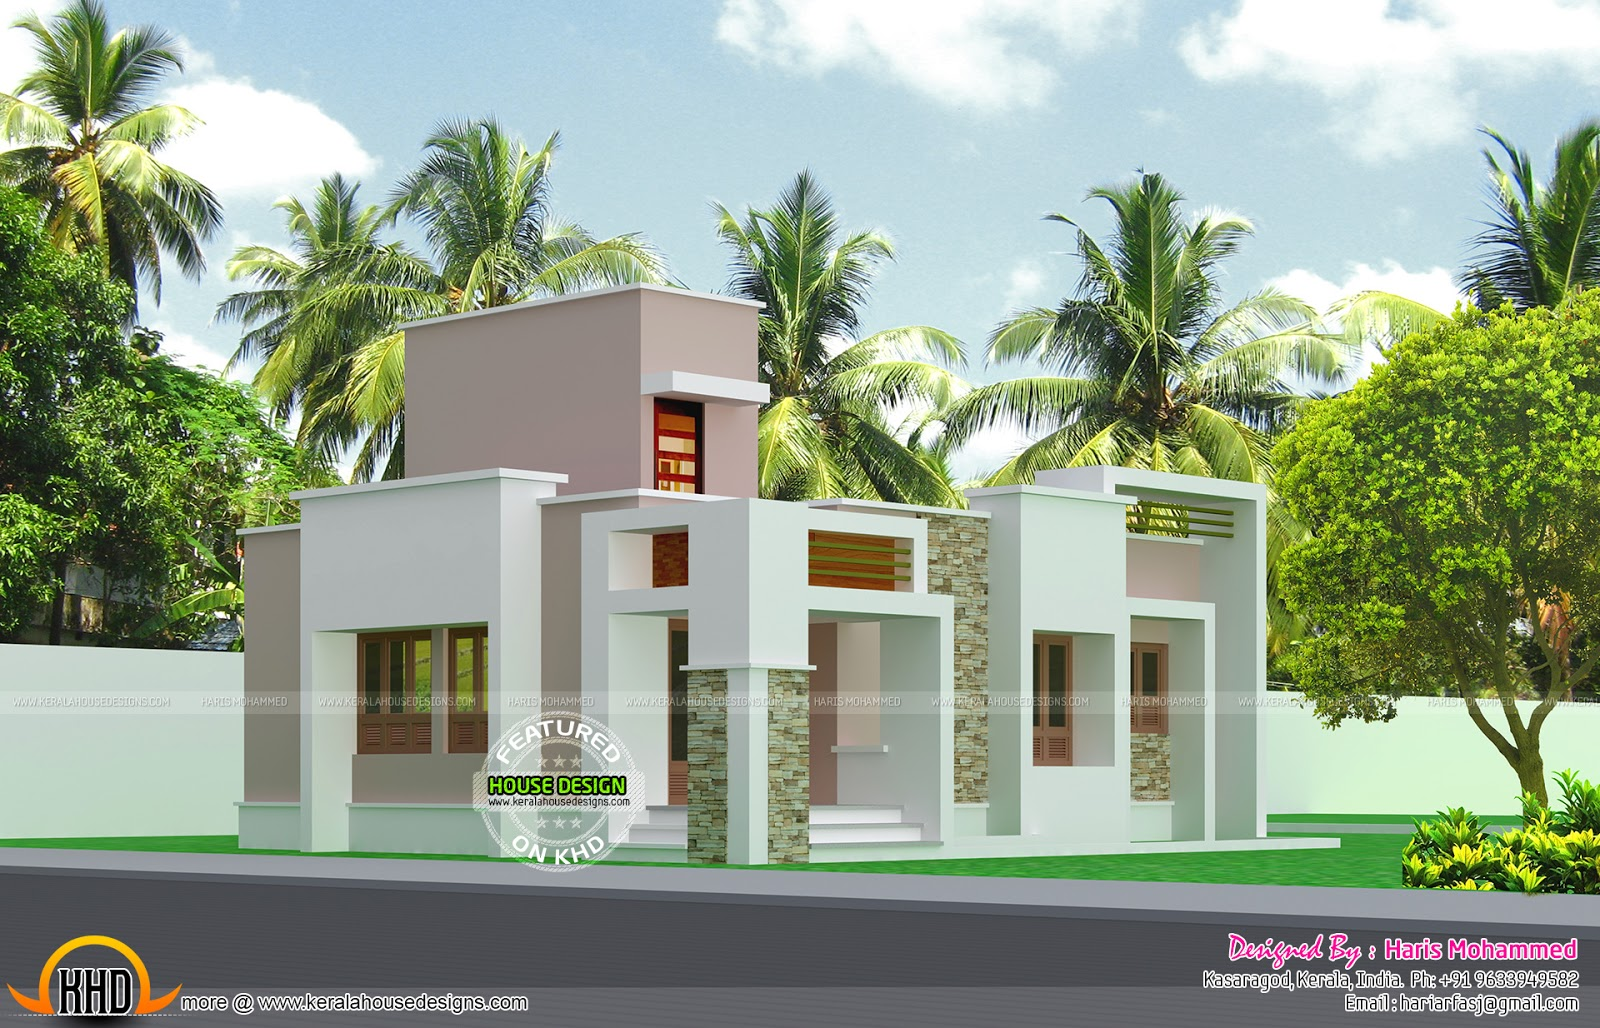 Box Type Low Budget Home Kerala Home Design Bloglovin